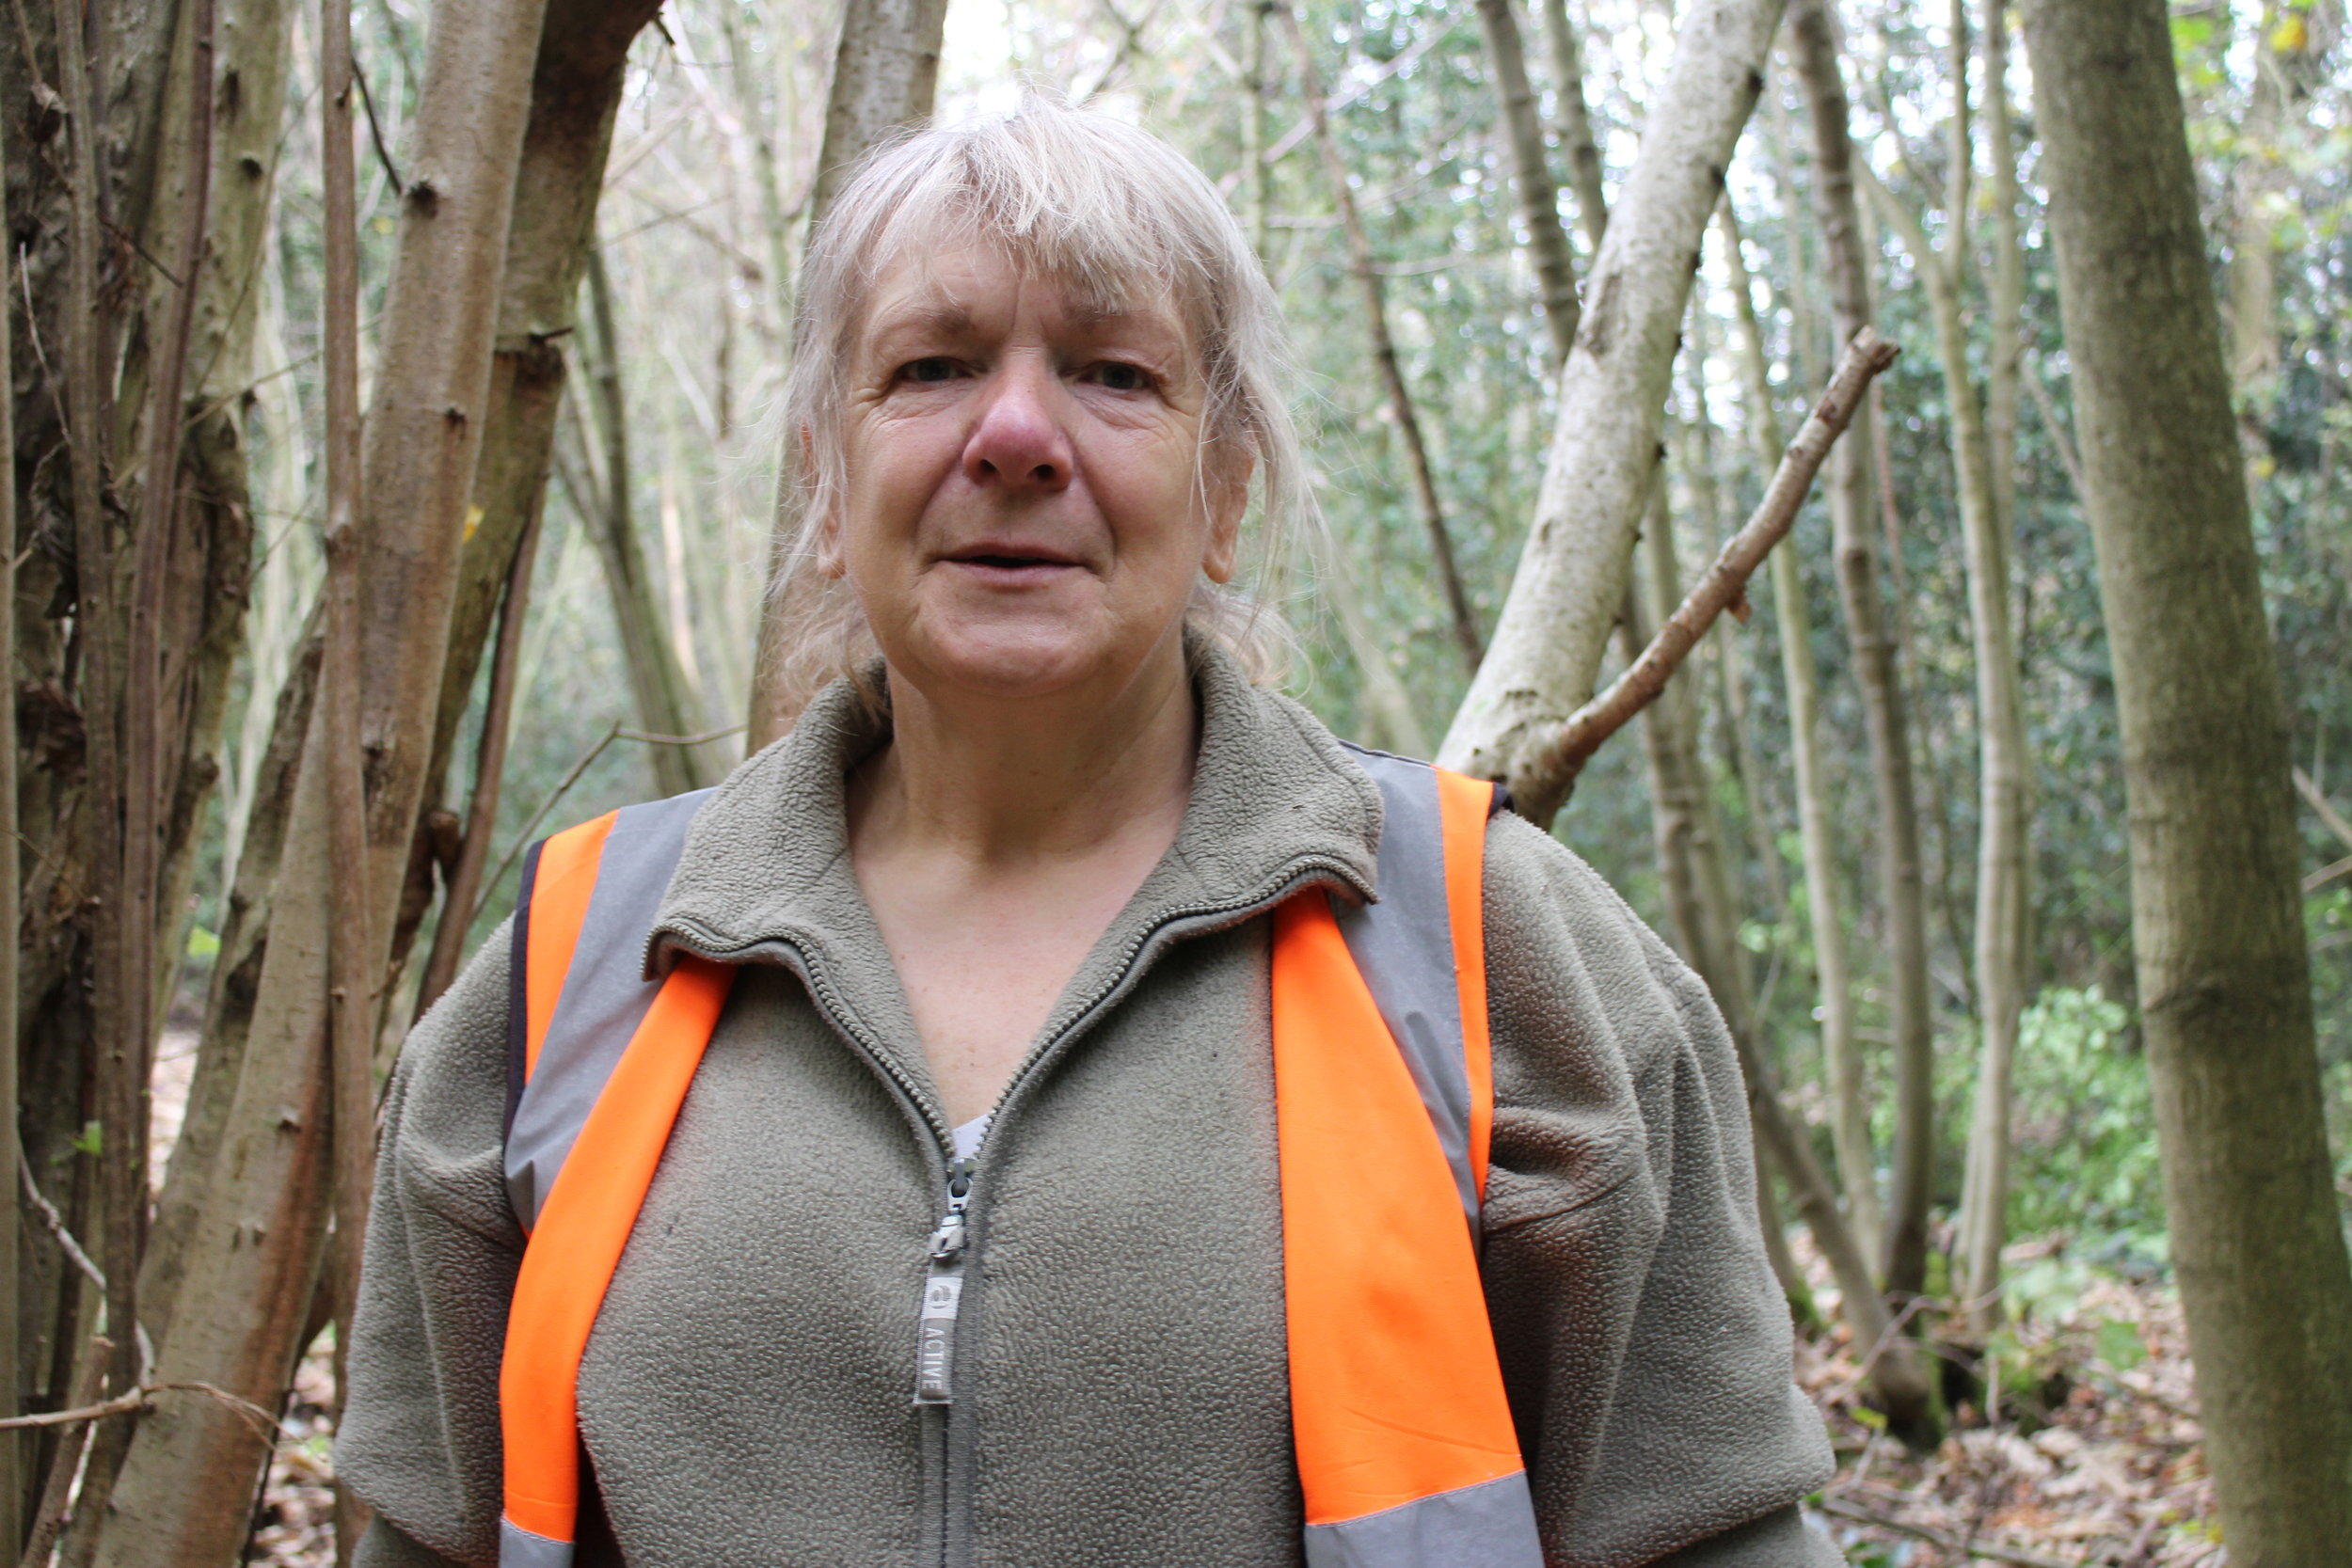 ELAINE BLEWITT   Elaine manages our workdays. Come along to meet her and help with our work in the park!